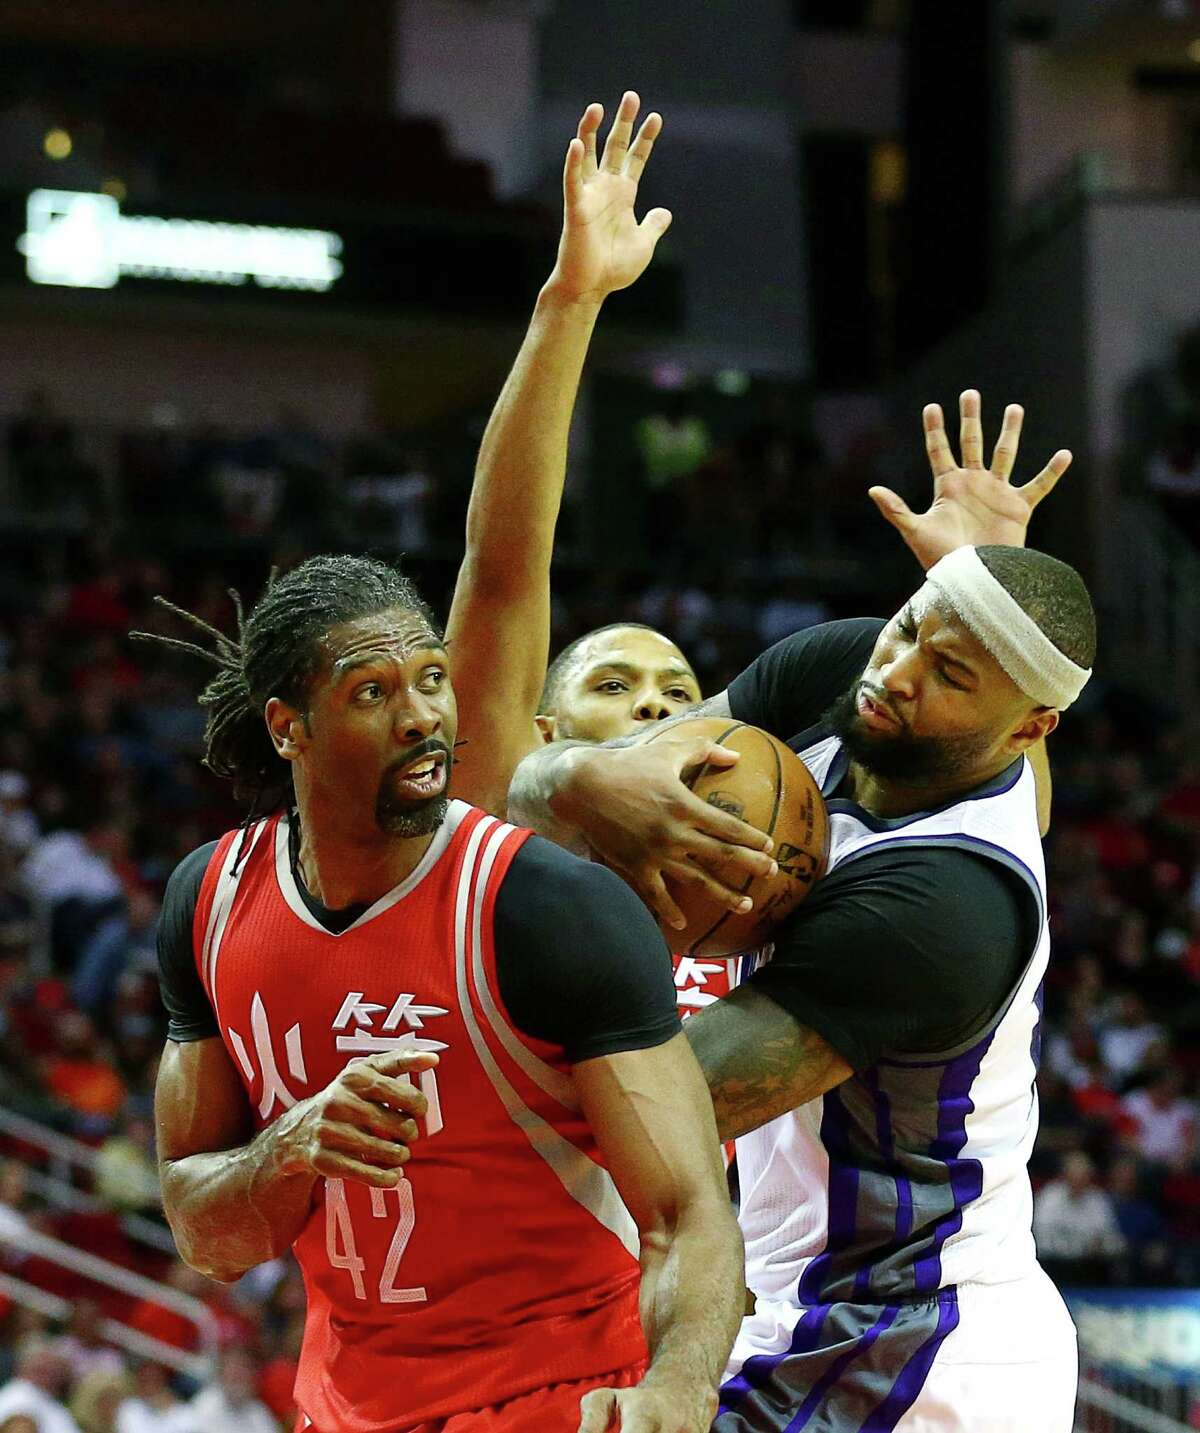 Sacramento Kings forward DeMarcus Cousins (15) runs into defense by Houston Rockets center Nene Hilario (42) and guard Eric Gordon (10) as he tries to drive to the basket during the second quarter of an NBA game at the Toyota Center, Tuesday, Jan. 31, 2017, in Houston.